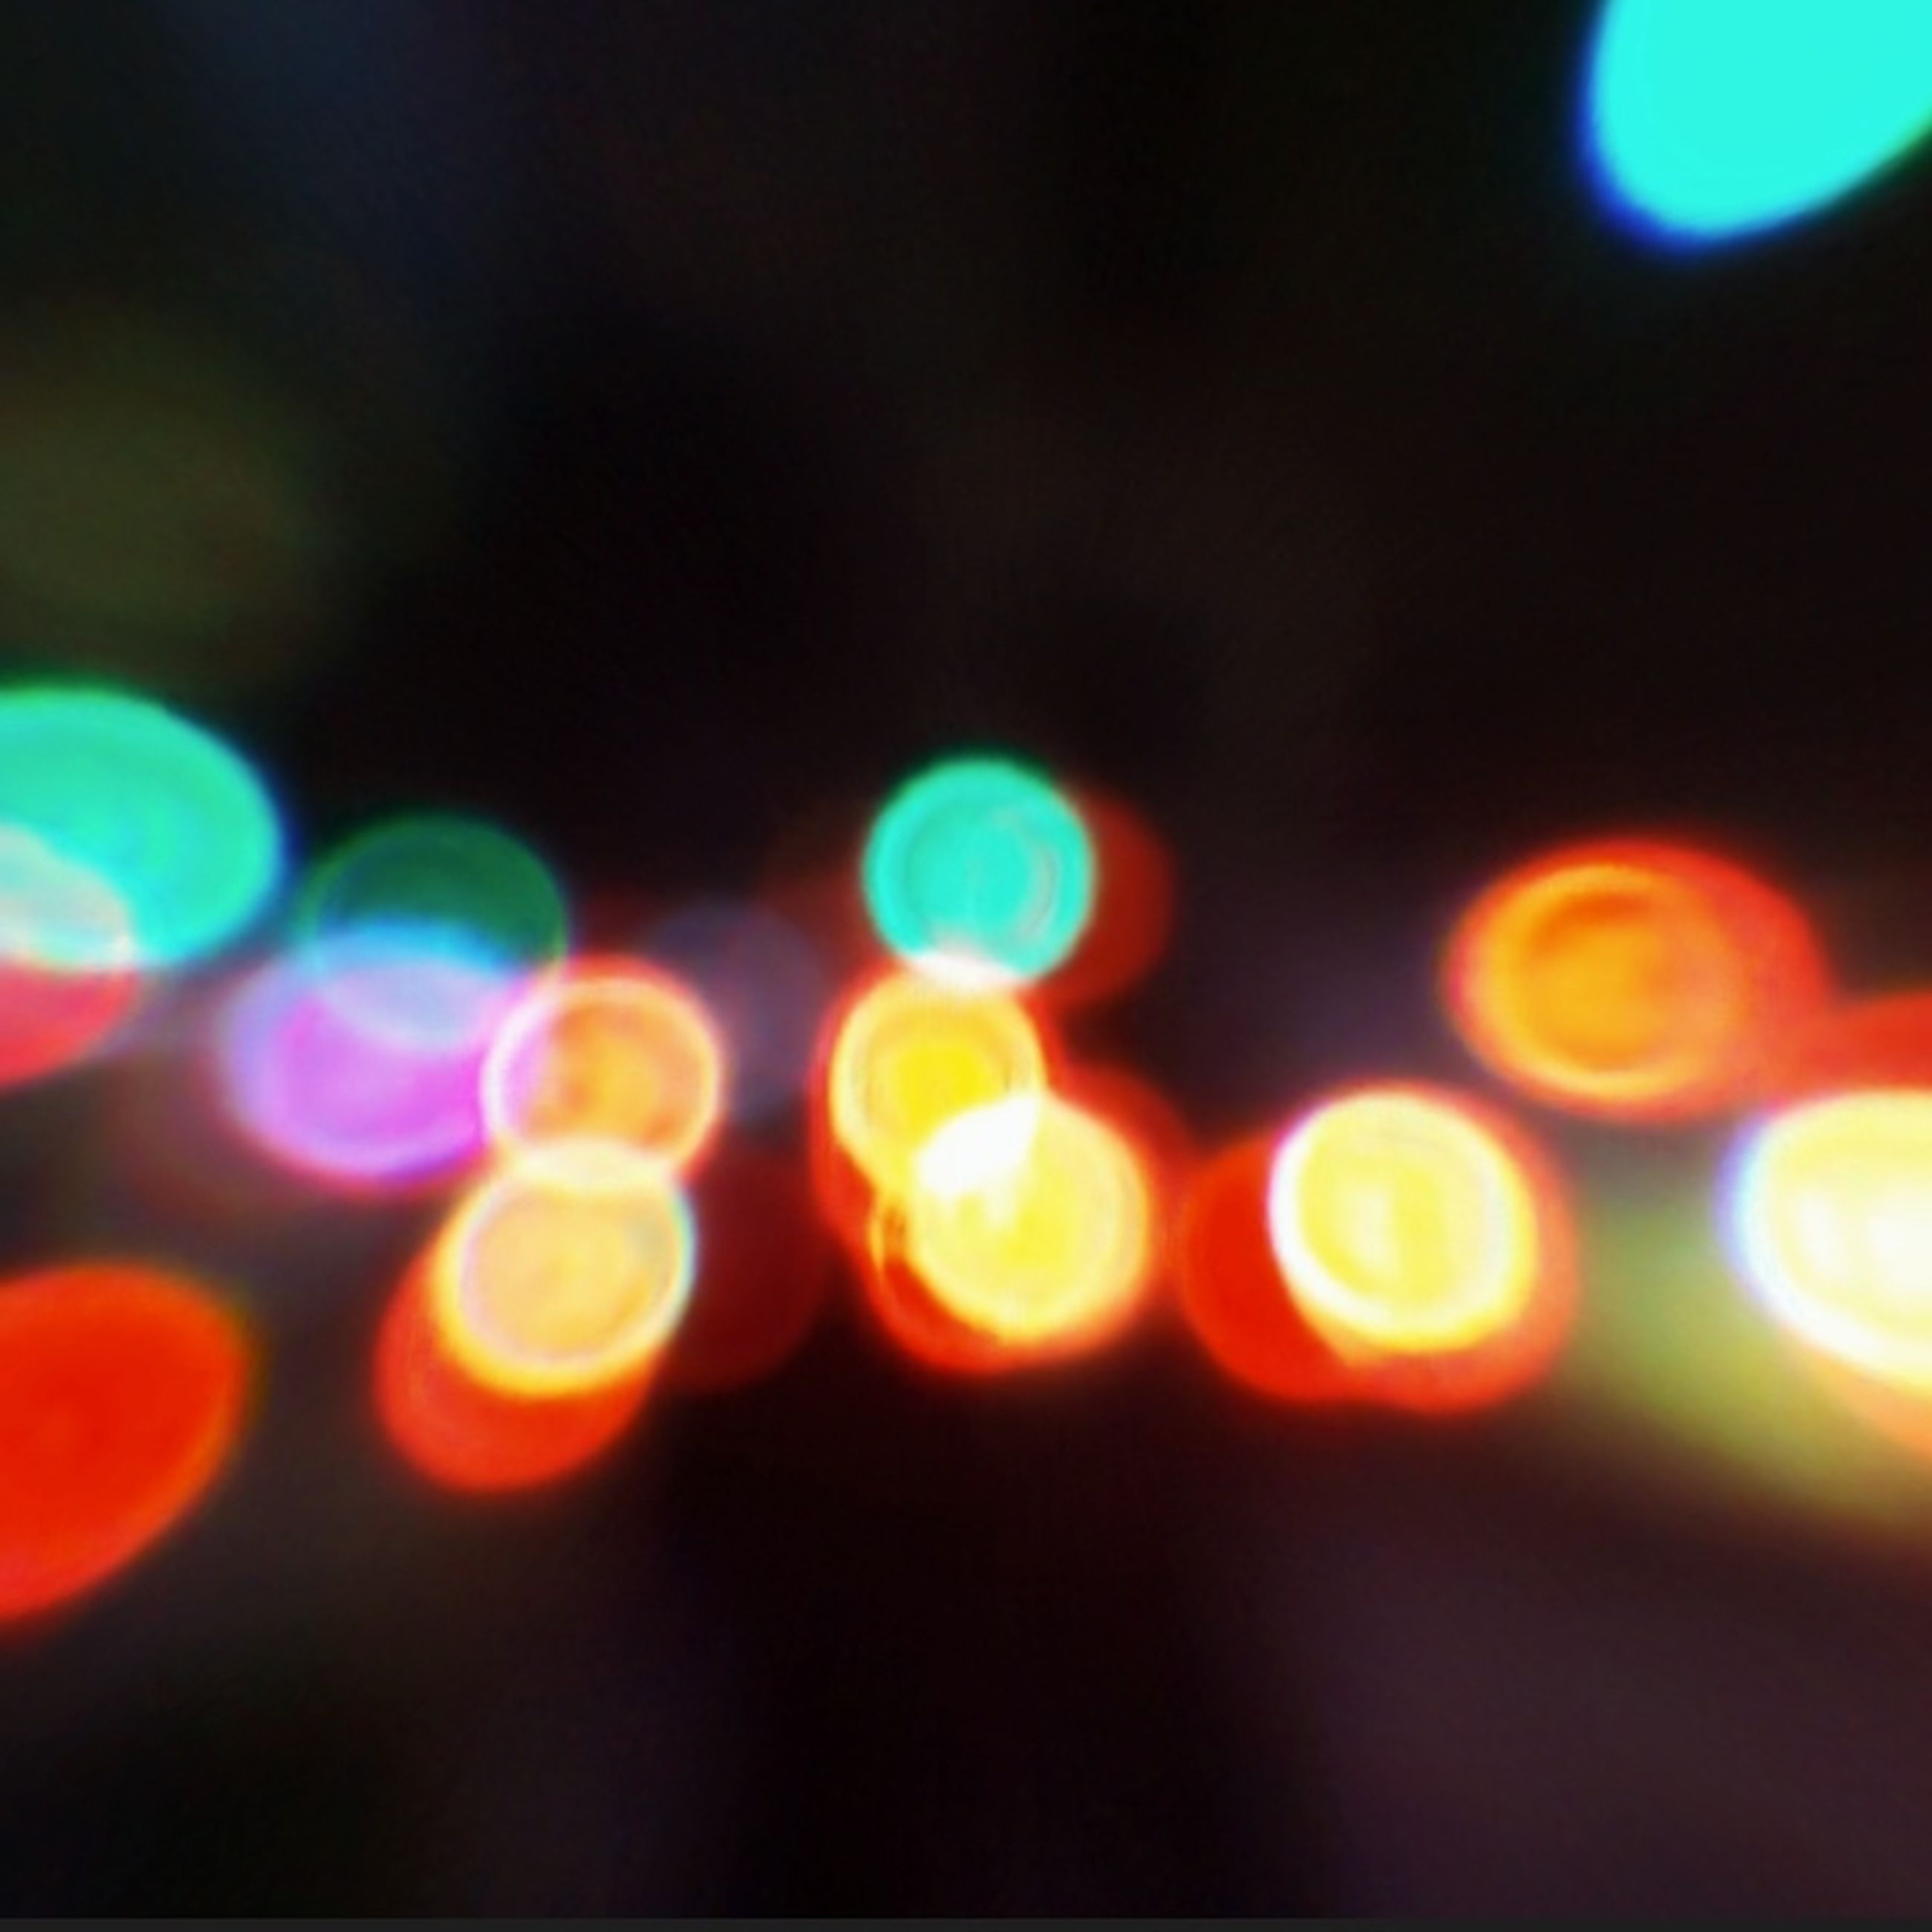 illuminated, defocused, lighting equipment, light effect, circle, lens flare, shiny, glowing, night, no people, abstract, pattern, multi colored, disco lights, projection, close-up, projection equipment, futuristic, indoors